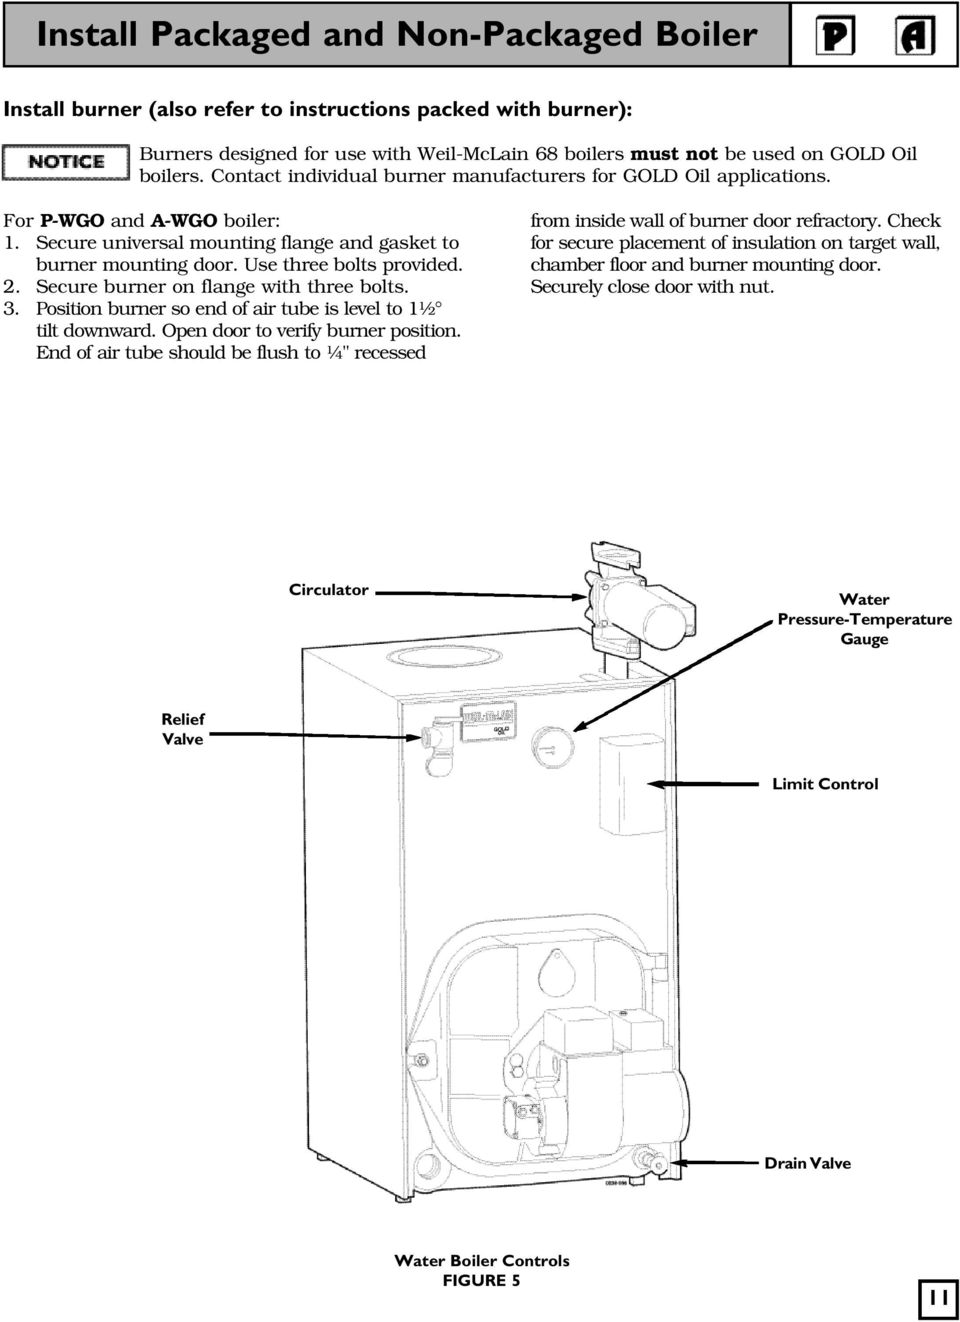 Closein Boiler Wgo Series 3 Oil Fired Natural Draft Water Boiler Pdf